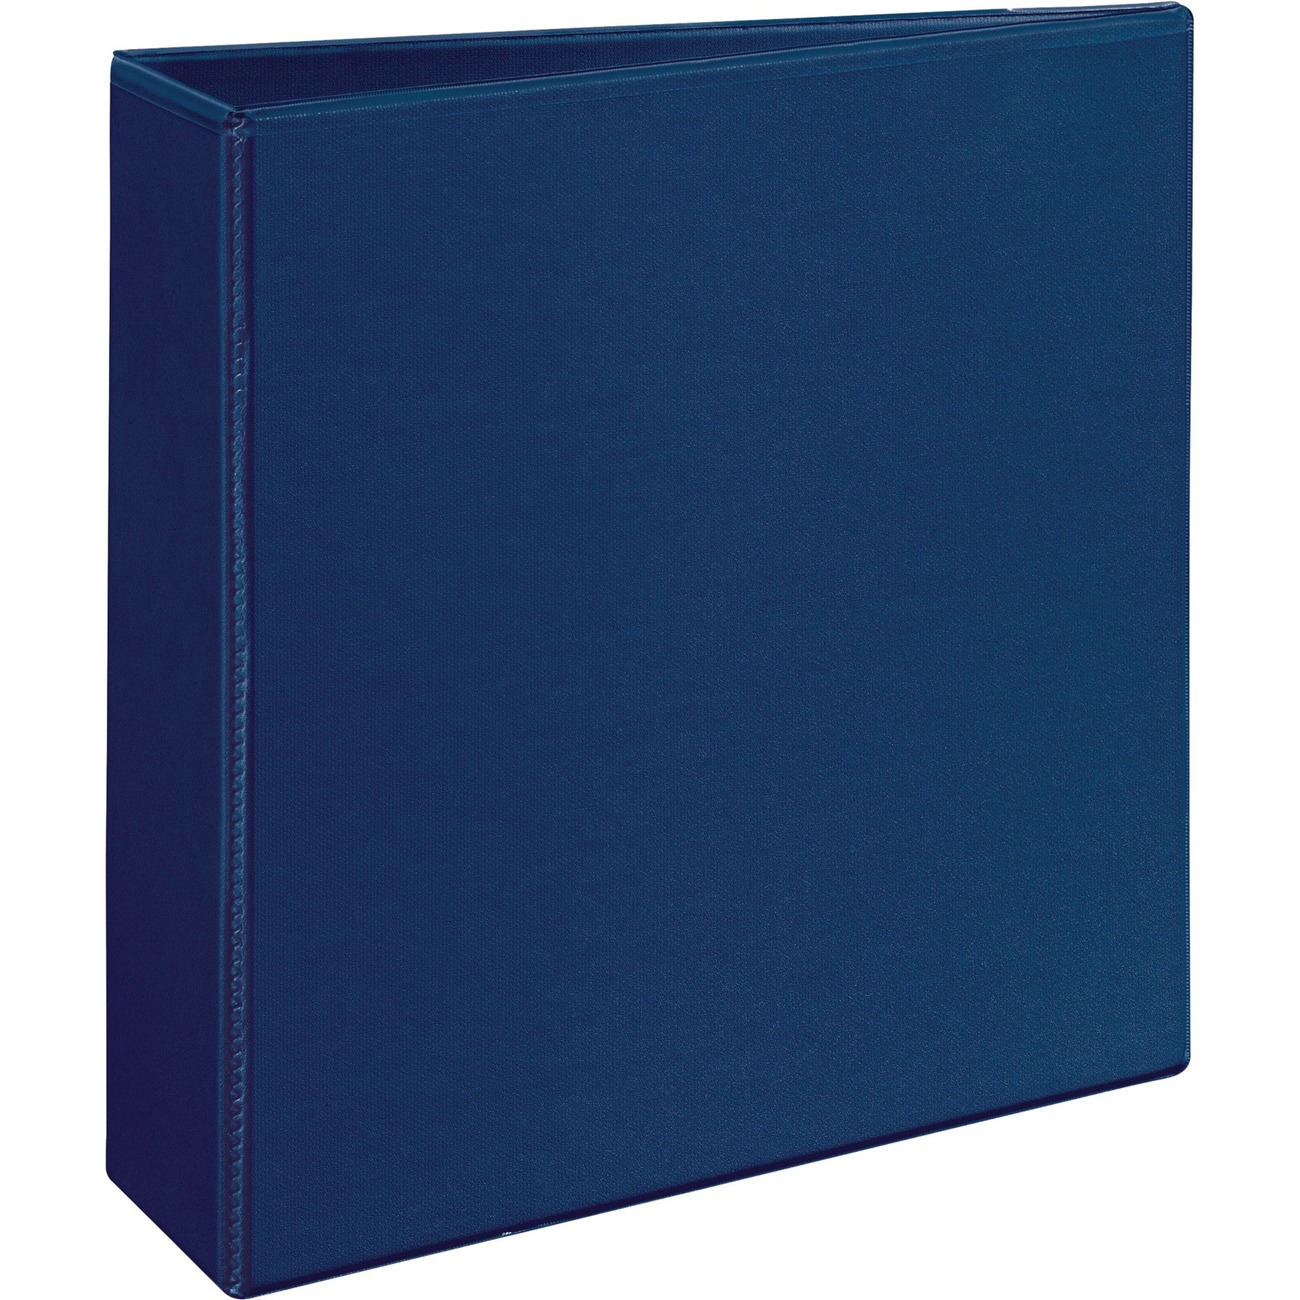 West Coast Office Supplies :: Office Supplies :: Binders